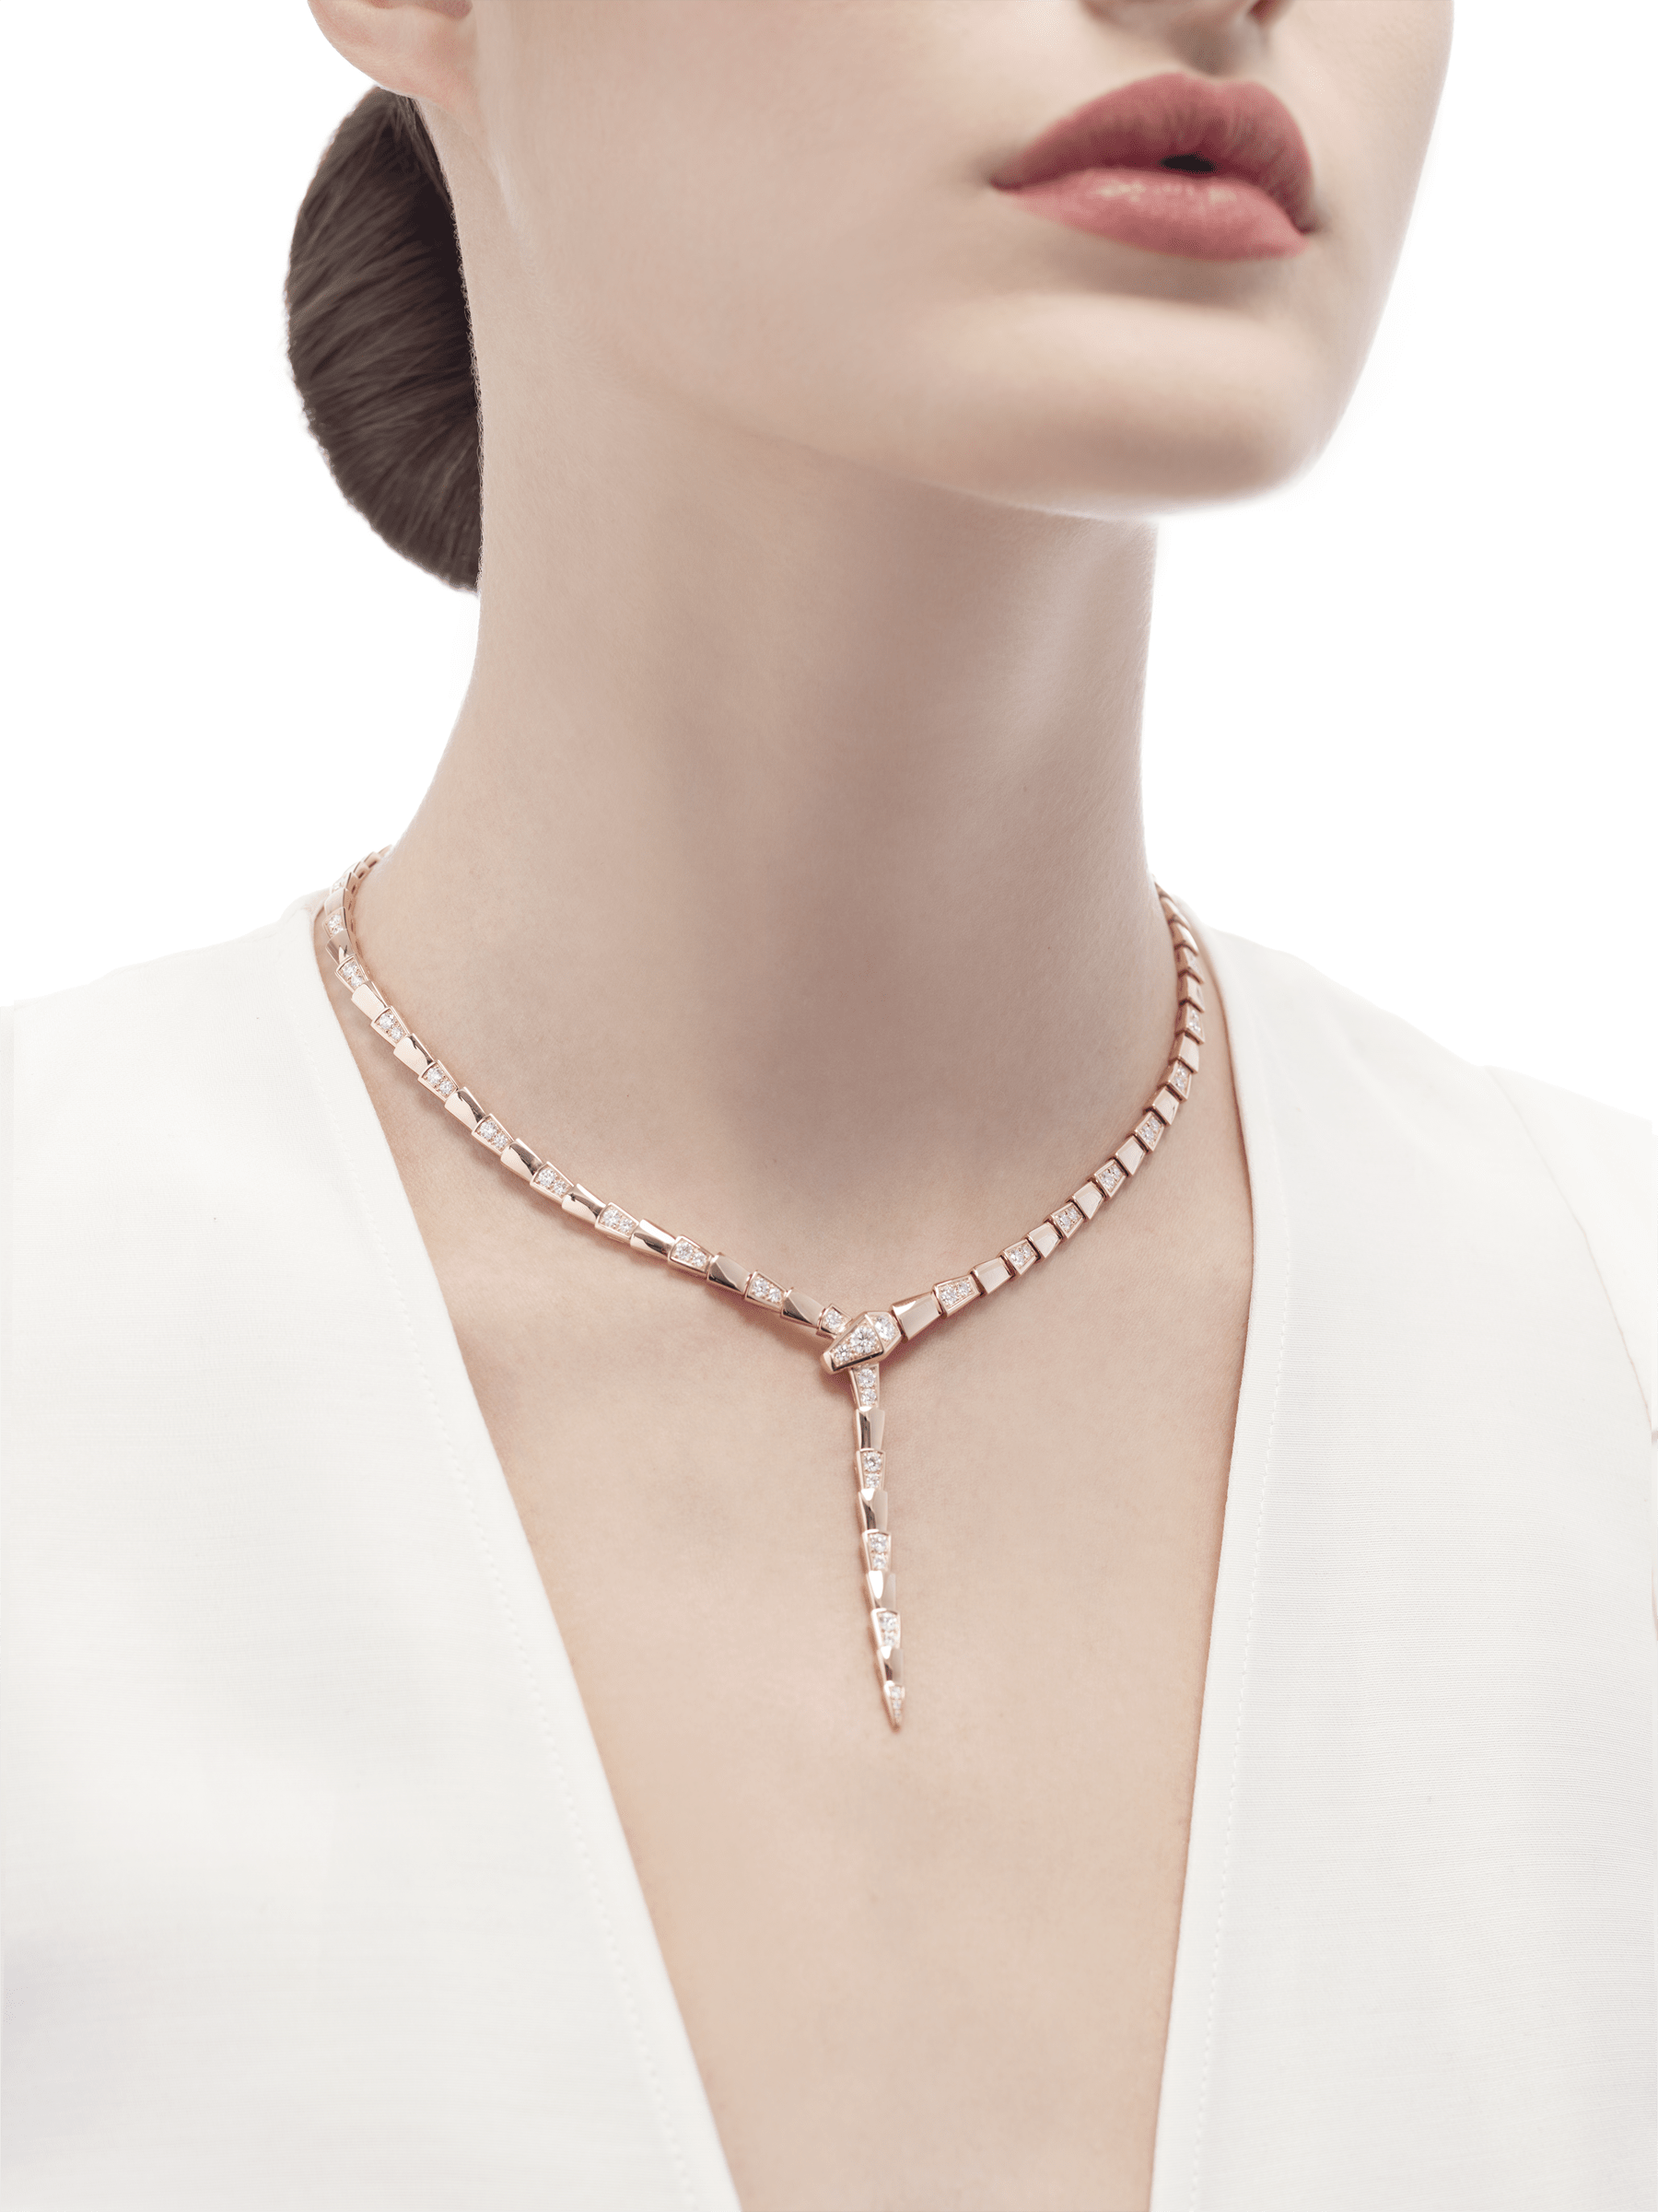 Serpenti Viper thin necklace in 18 kt rose gold, set with demi-pavé diamonds. 353037 image 3